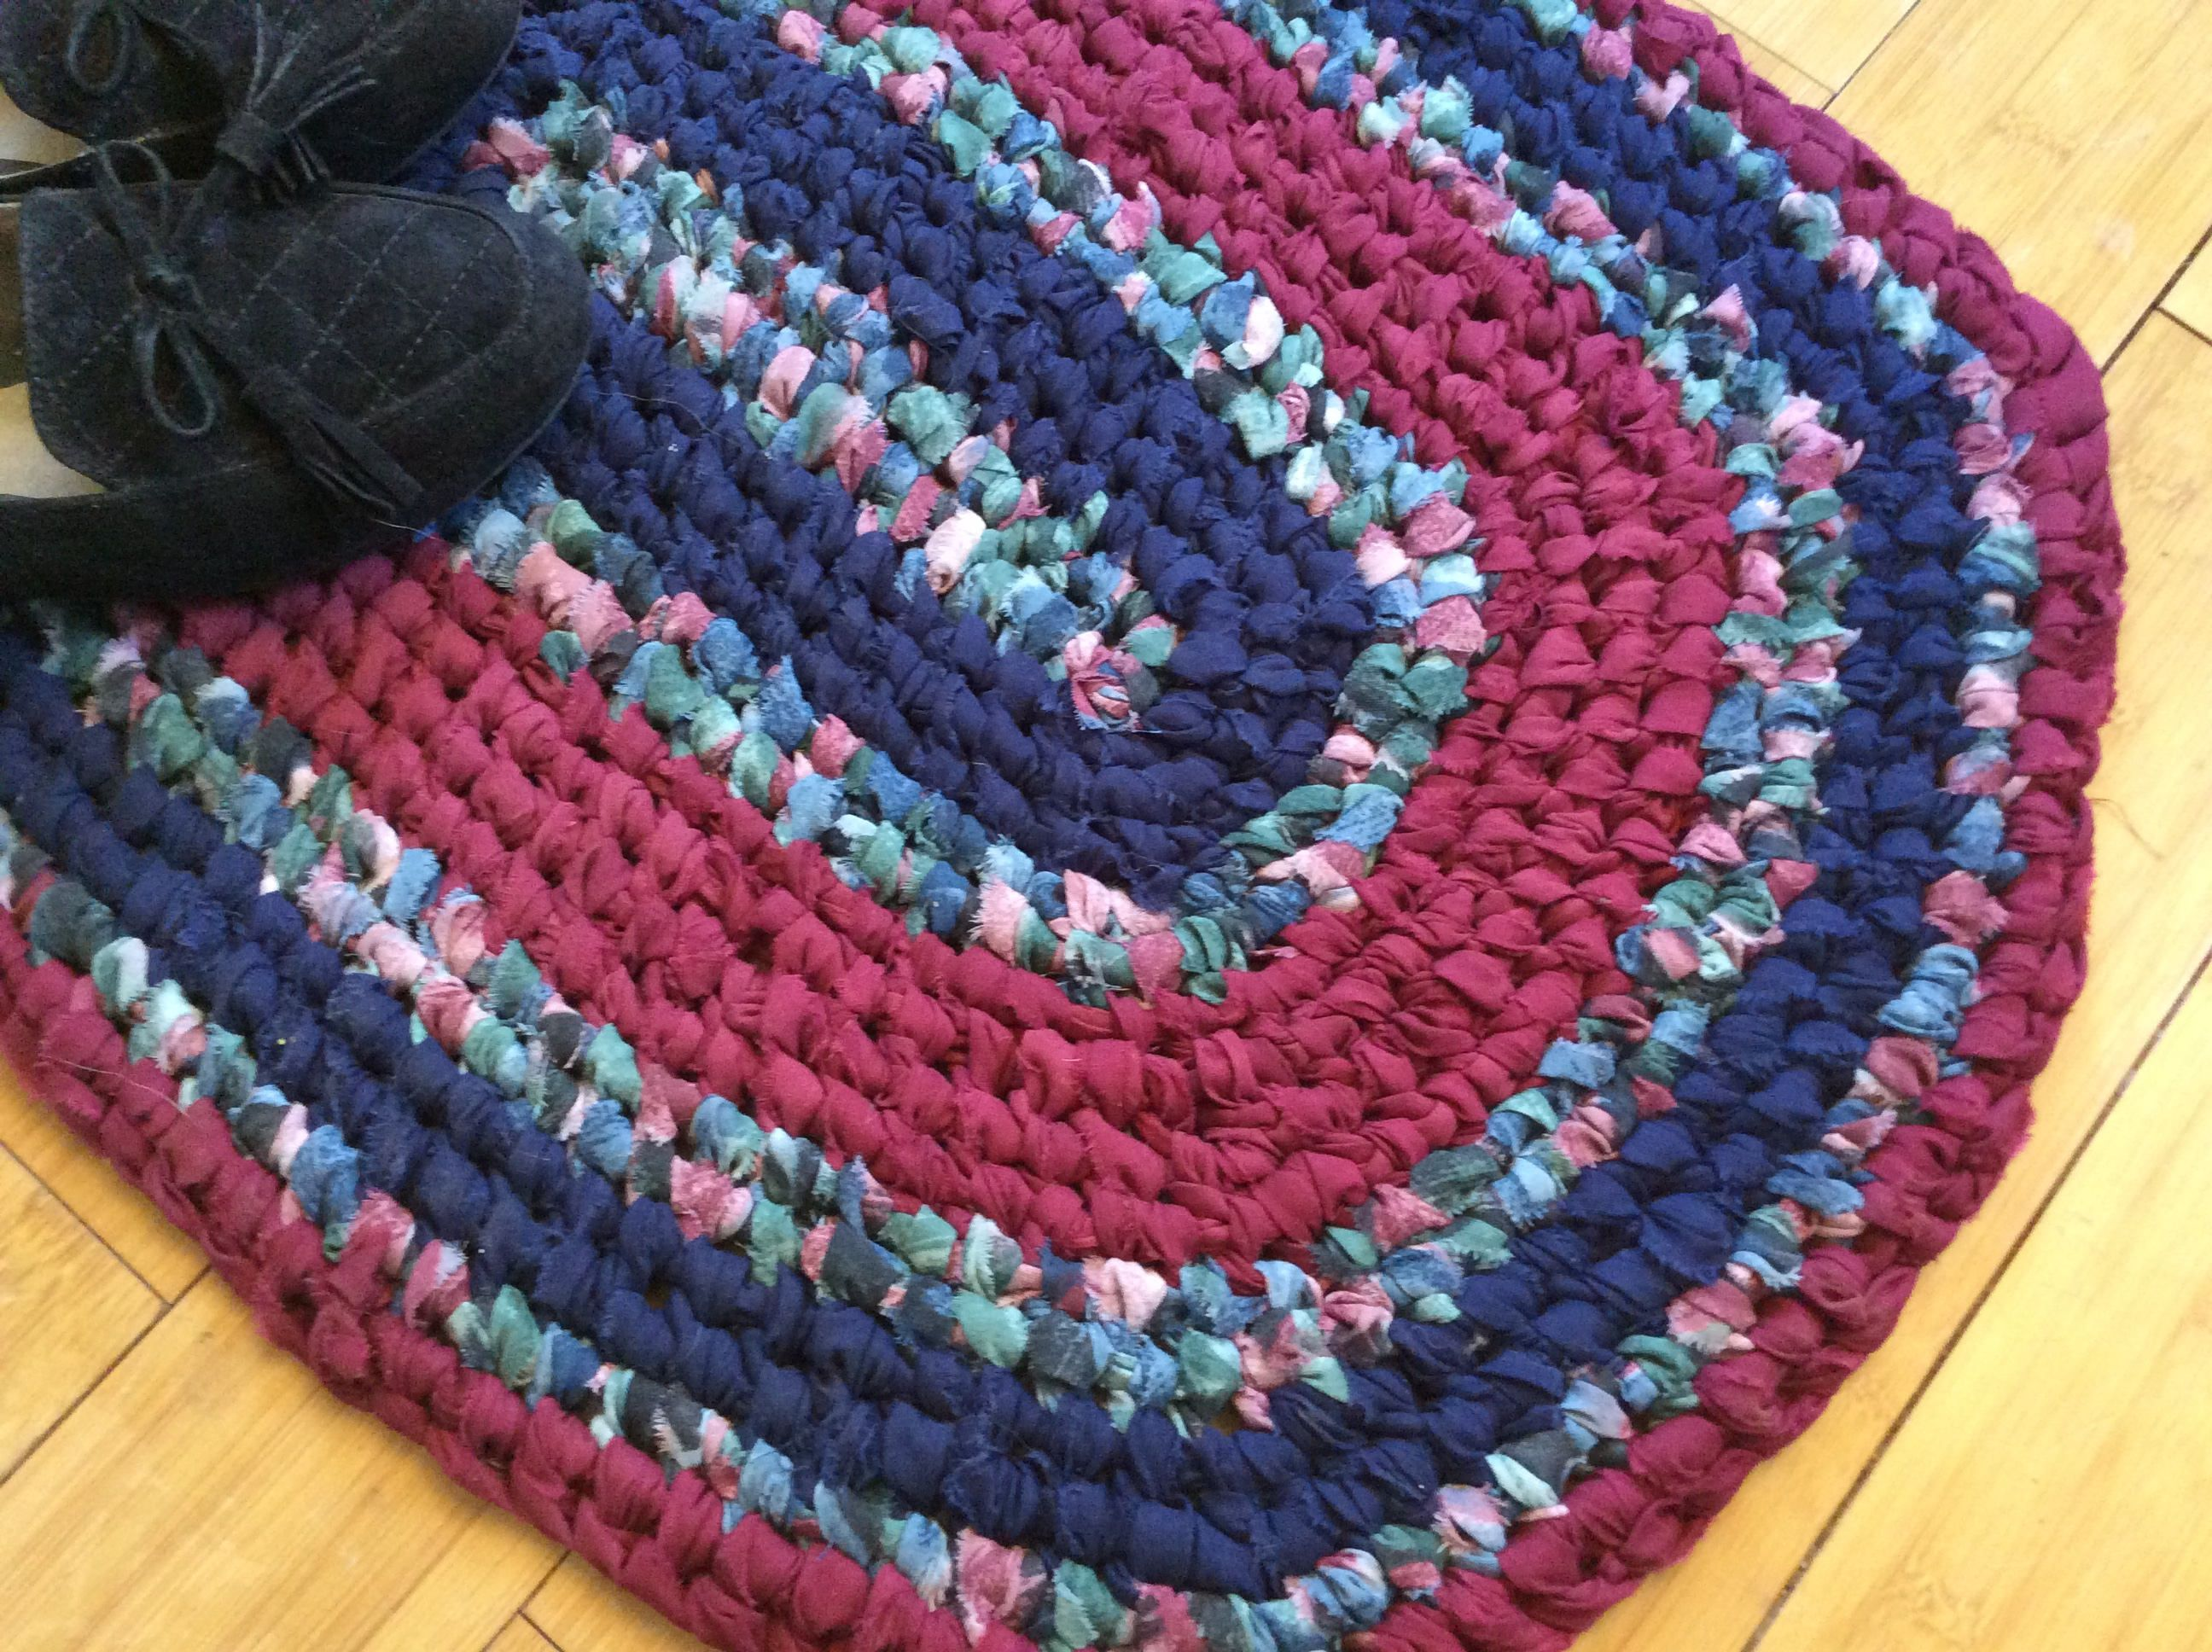 Navy Wine Oval Rag Rug With A Printed Fabric Of Hunter Green Machine Washable 25 X 18 Toothbrush Knotted Not Crochet